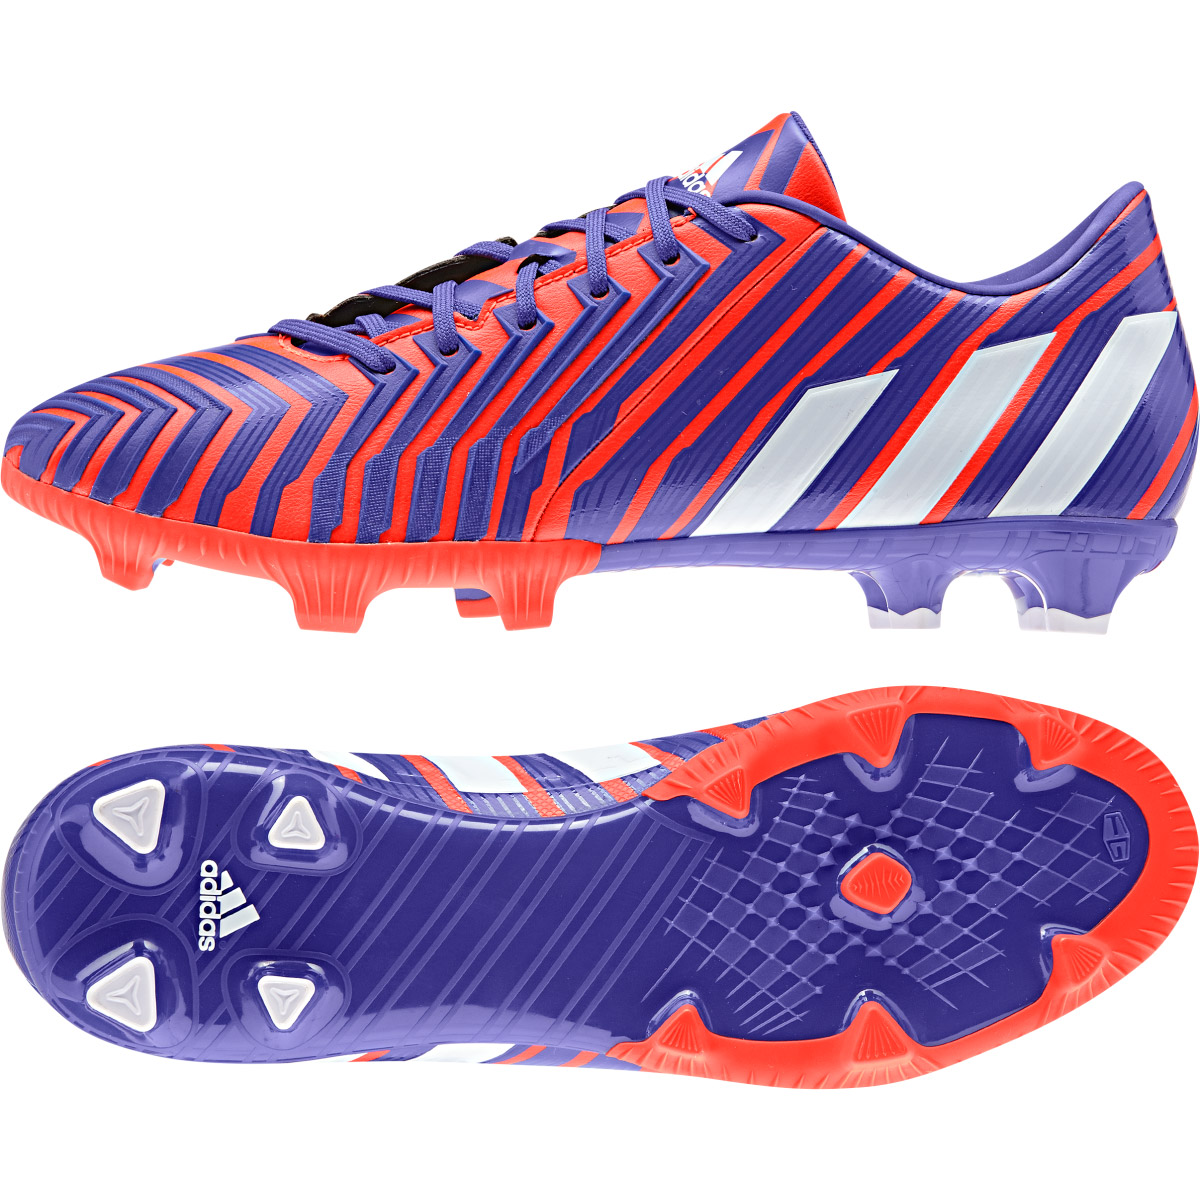 Adidas Predator Absolion Instinct Firm Ground Football Boots Red